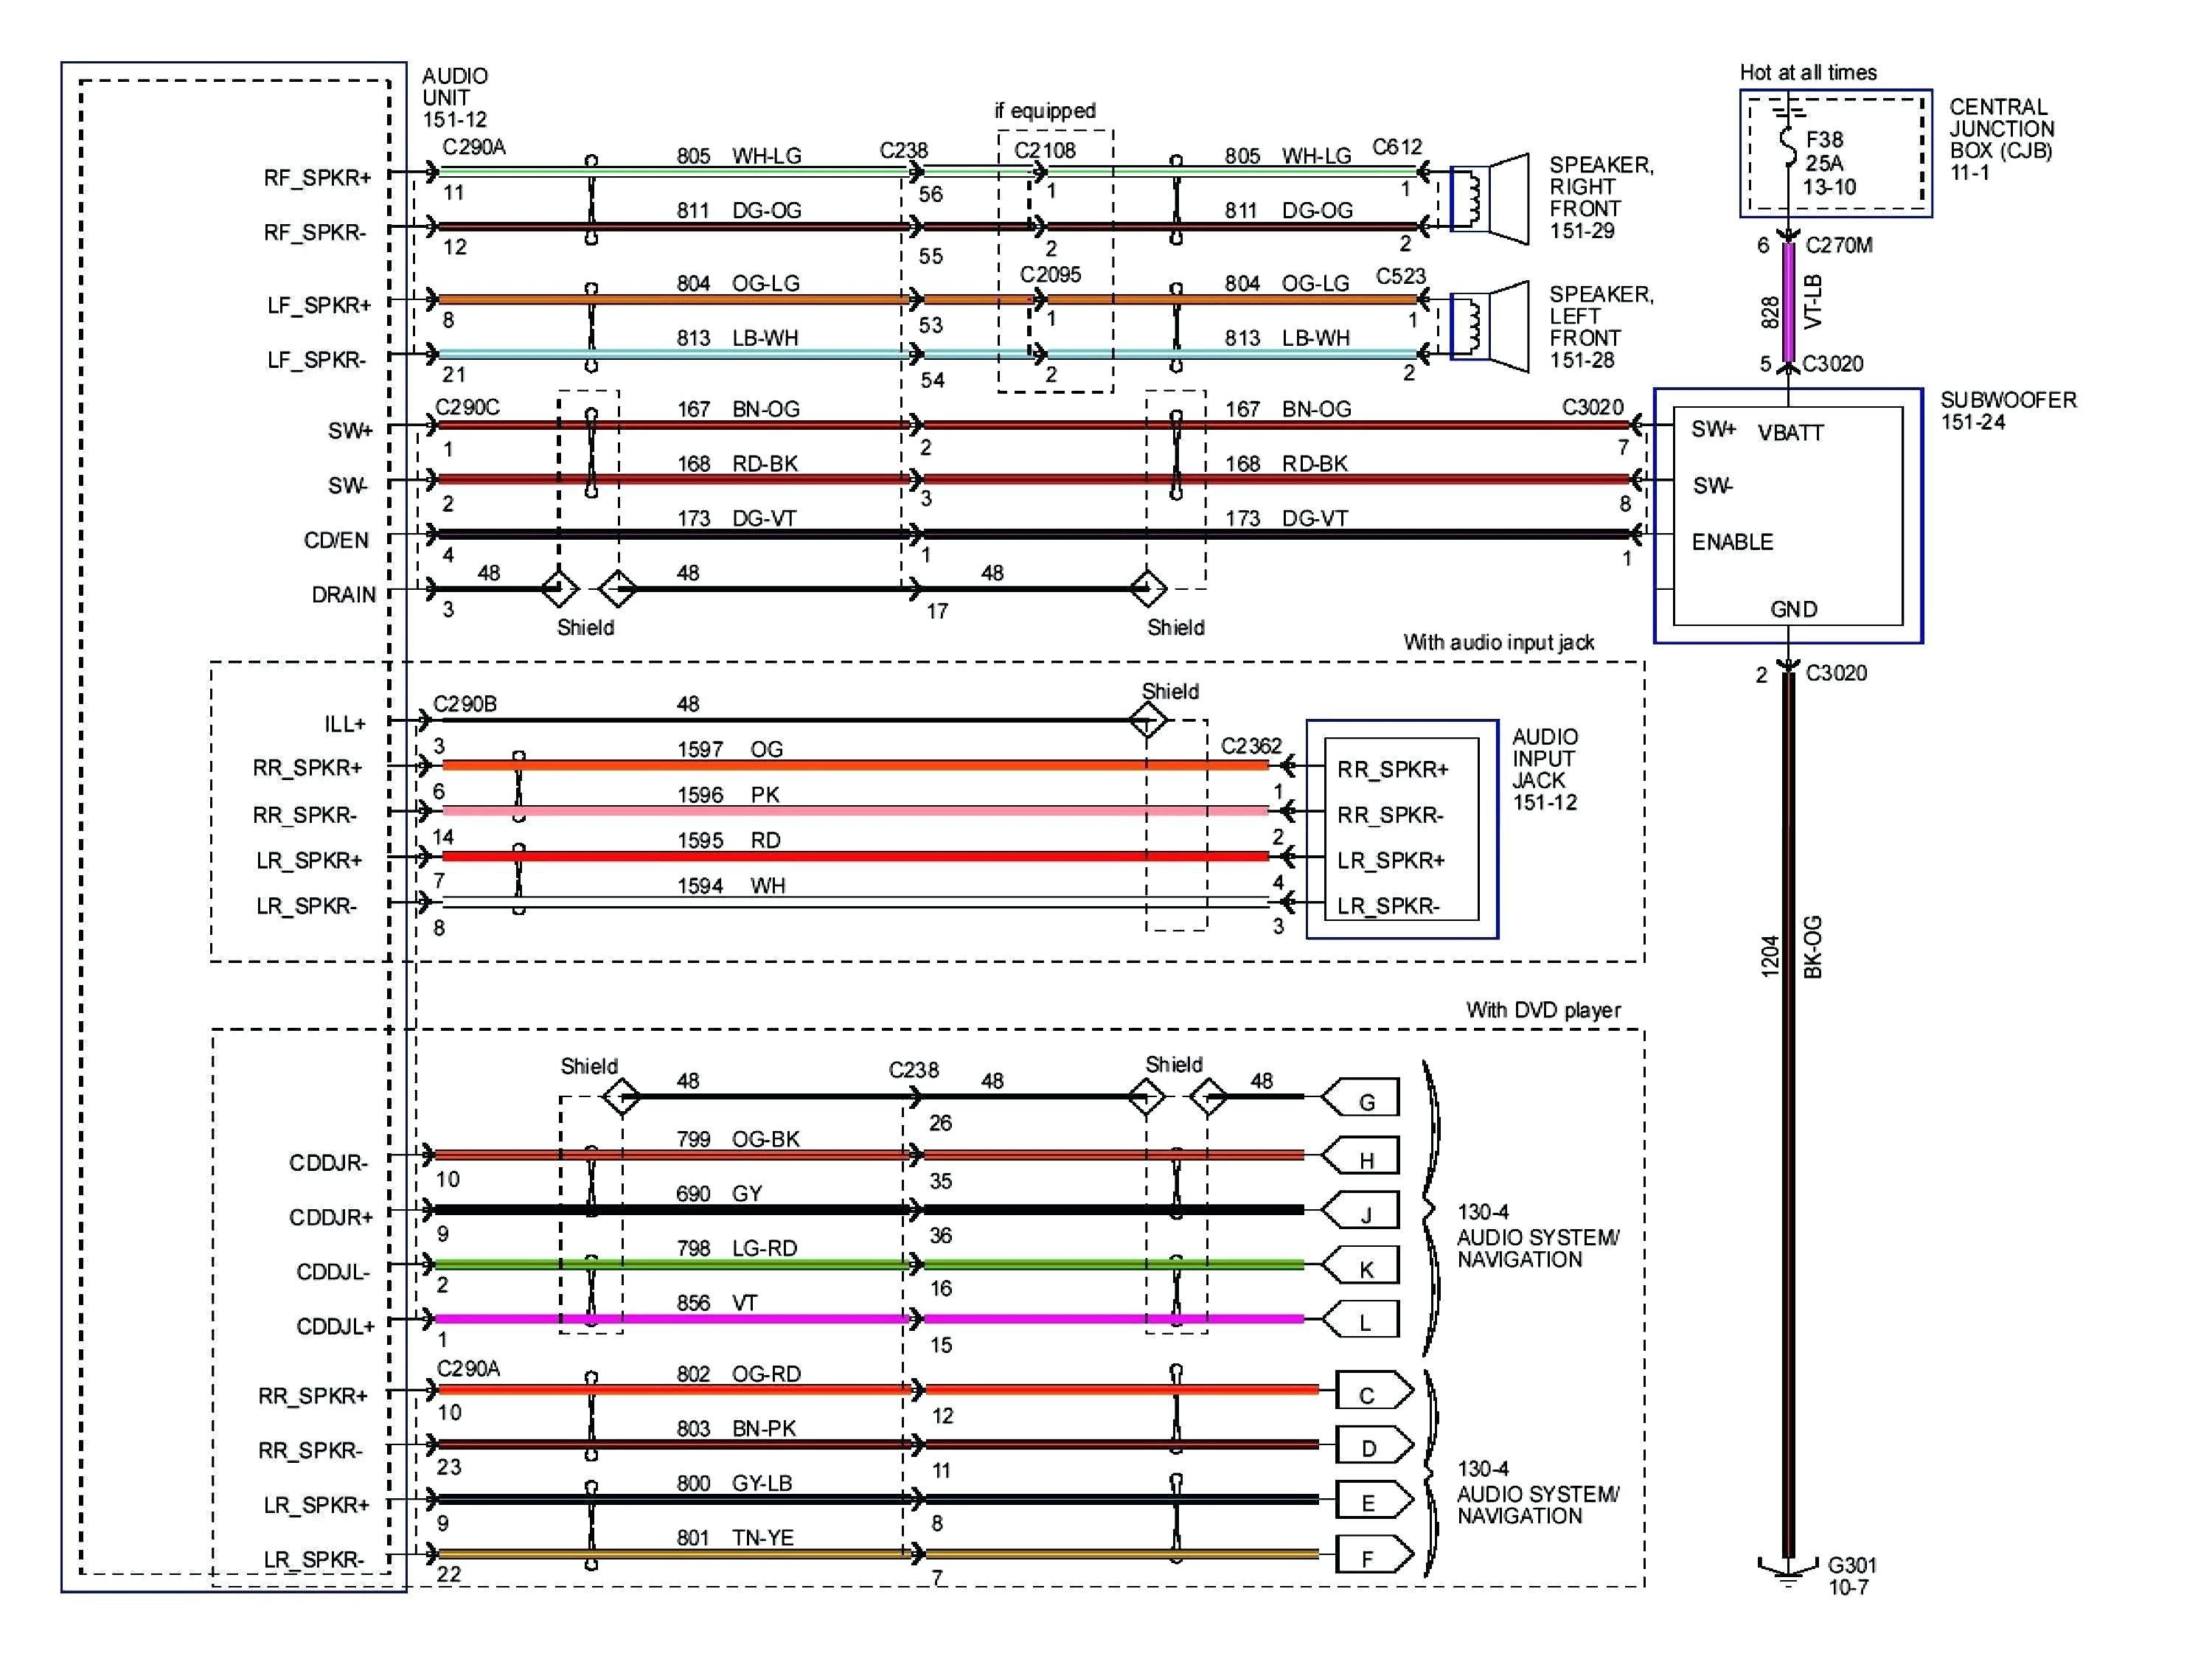 Wiring Diagram for Clarion Car Stereo in 2020 | Electrical wiring diagram,  Diagram, Trailer wiring diagram | 1998 Bmw Radio Wiring Diagram |  | Pinterest